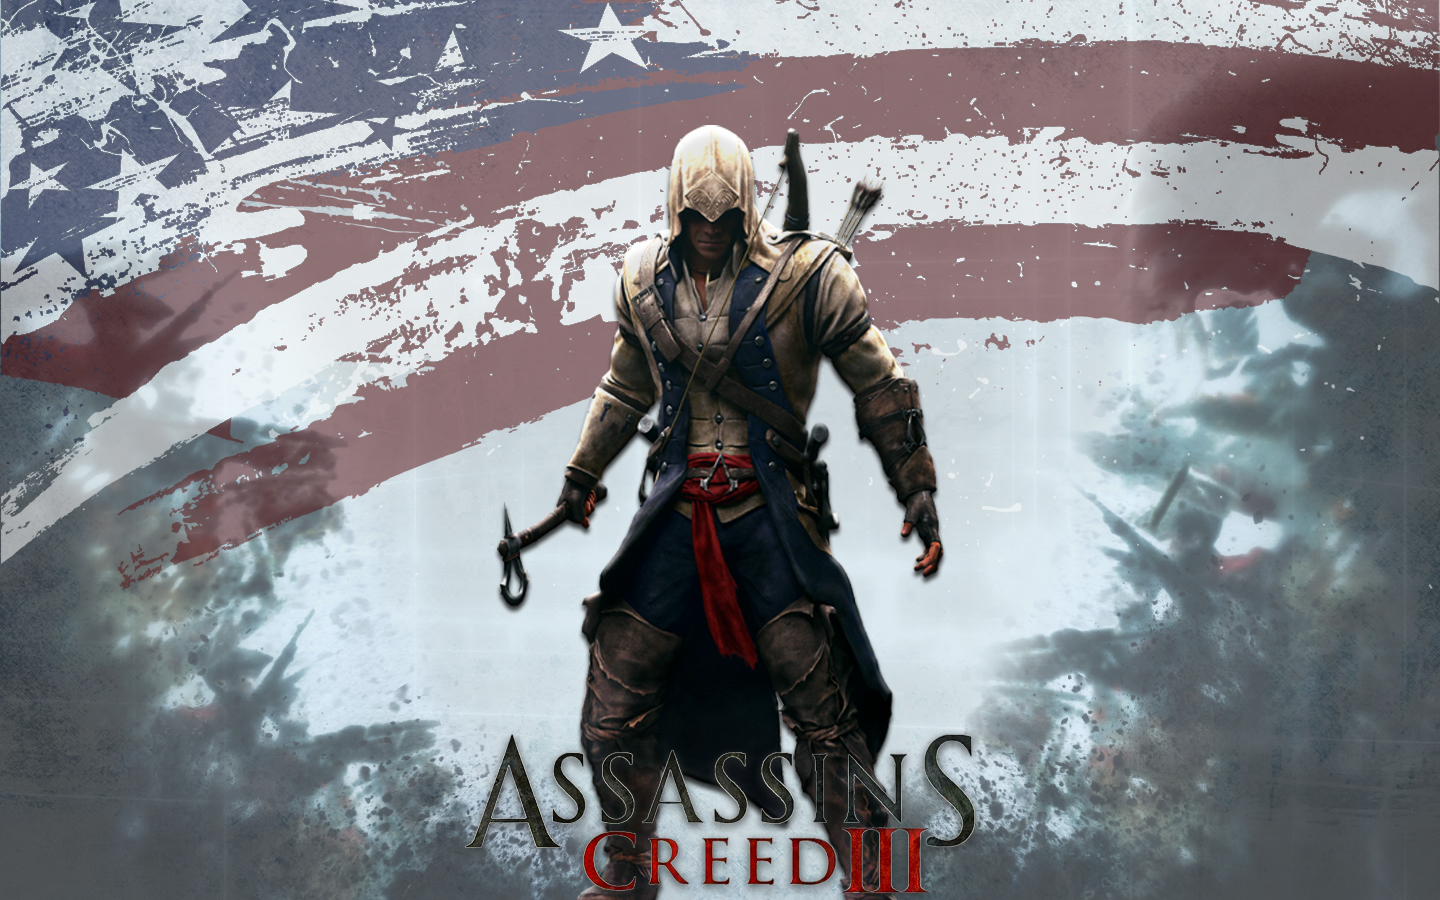 1440x900px Assassins Creed 3 Wallpaper Wallpapersafari